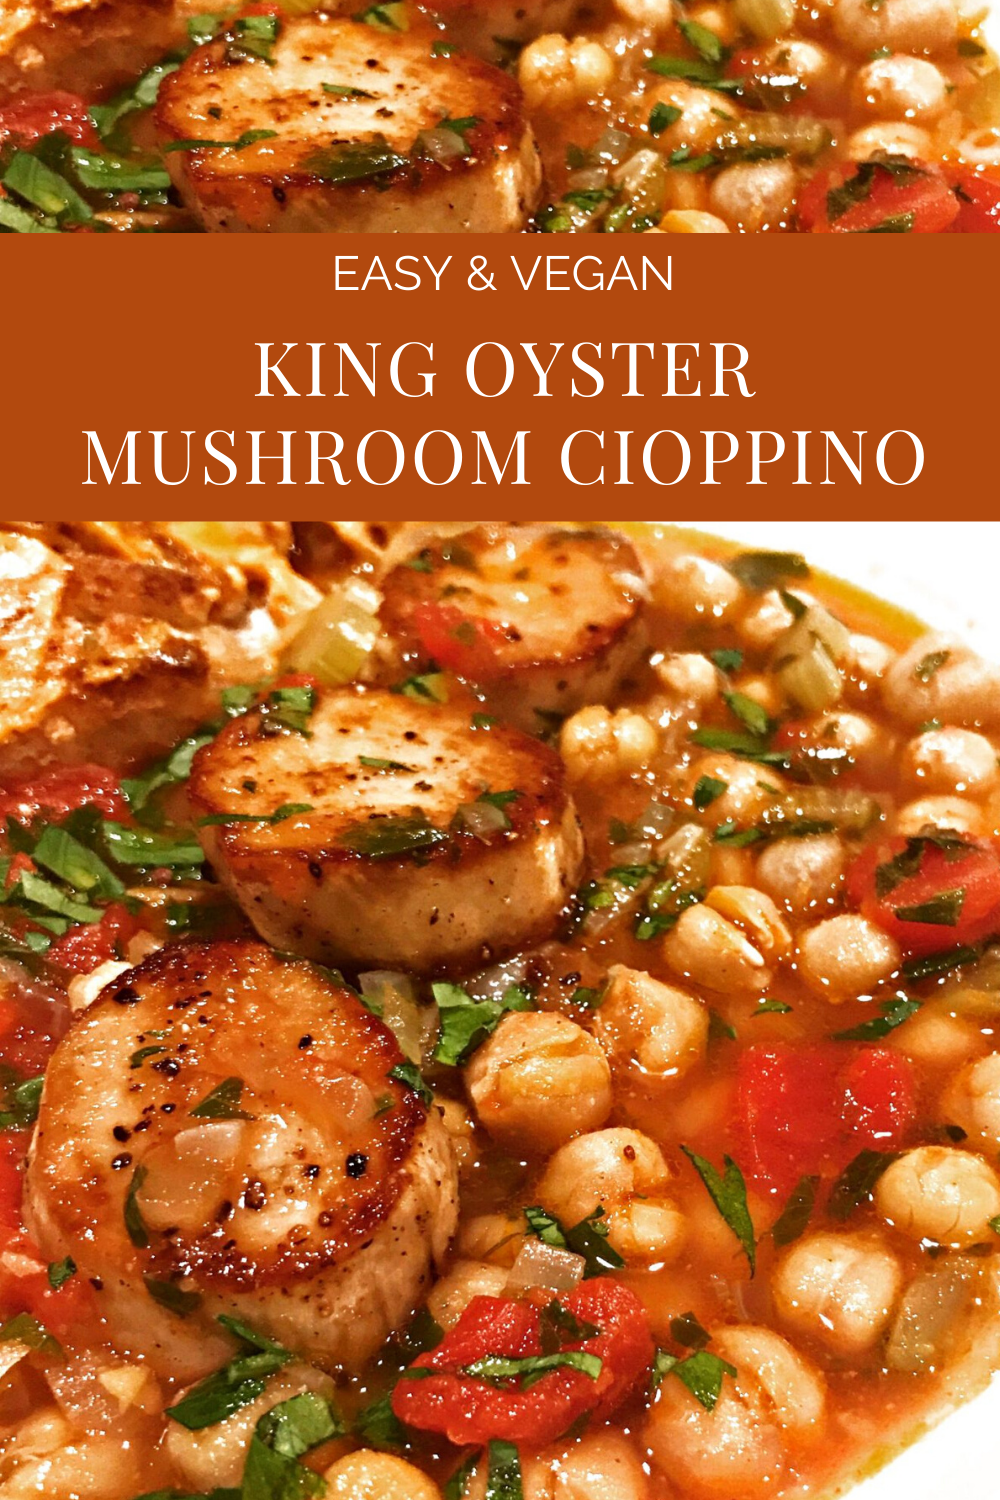 King Oyster Mushroom Cioppino - A gourmet vegan stew made with King Oyster mushroom scallops and seasoned with lots of garlic and Old Bay! #cioppino #veganseafoodrecipes via @thiswifecooks